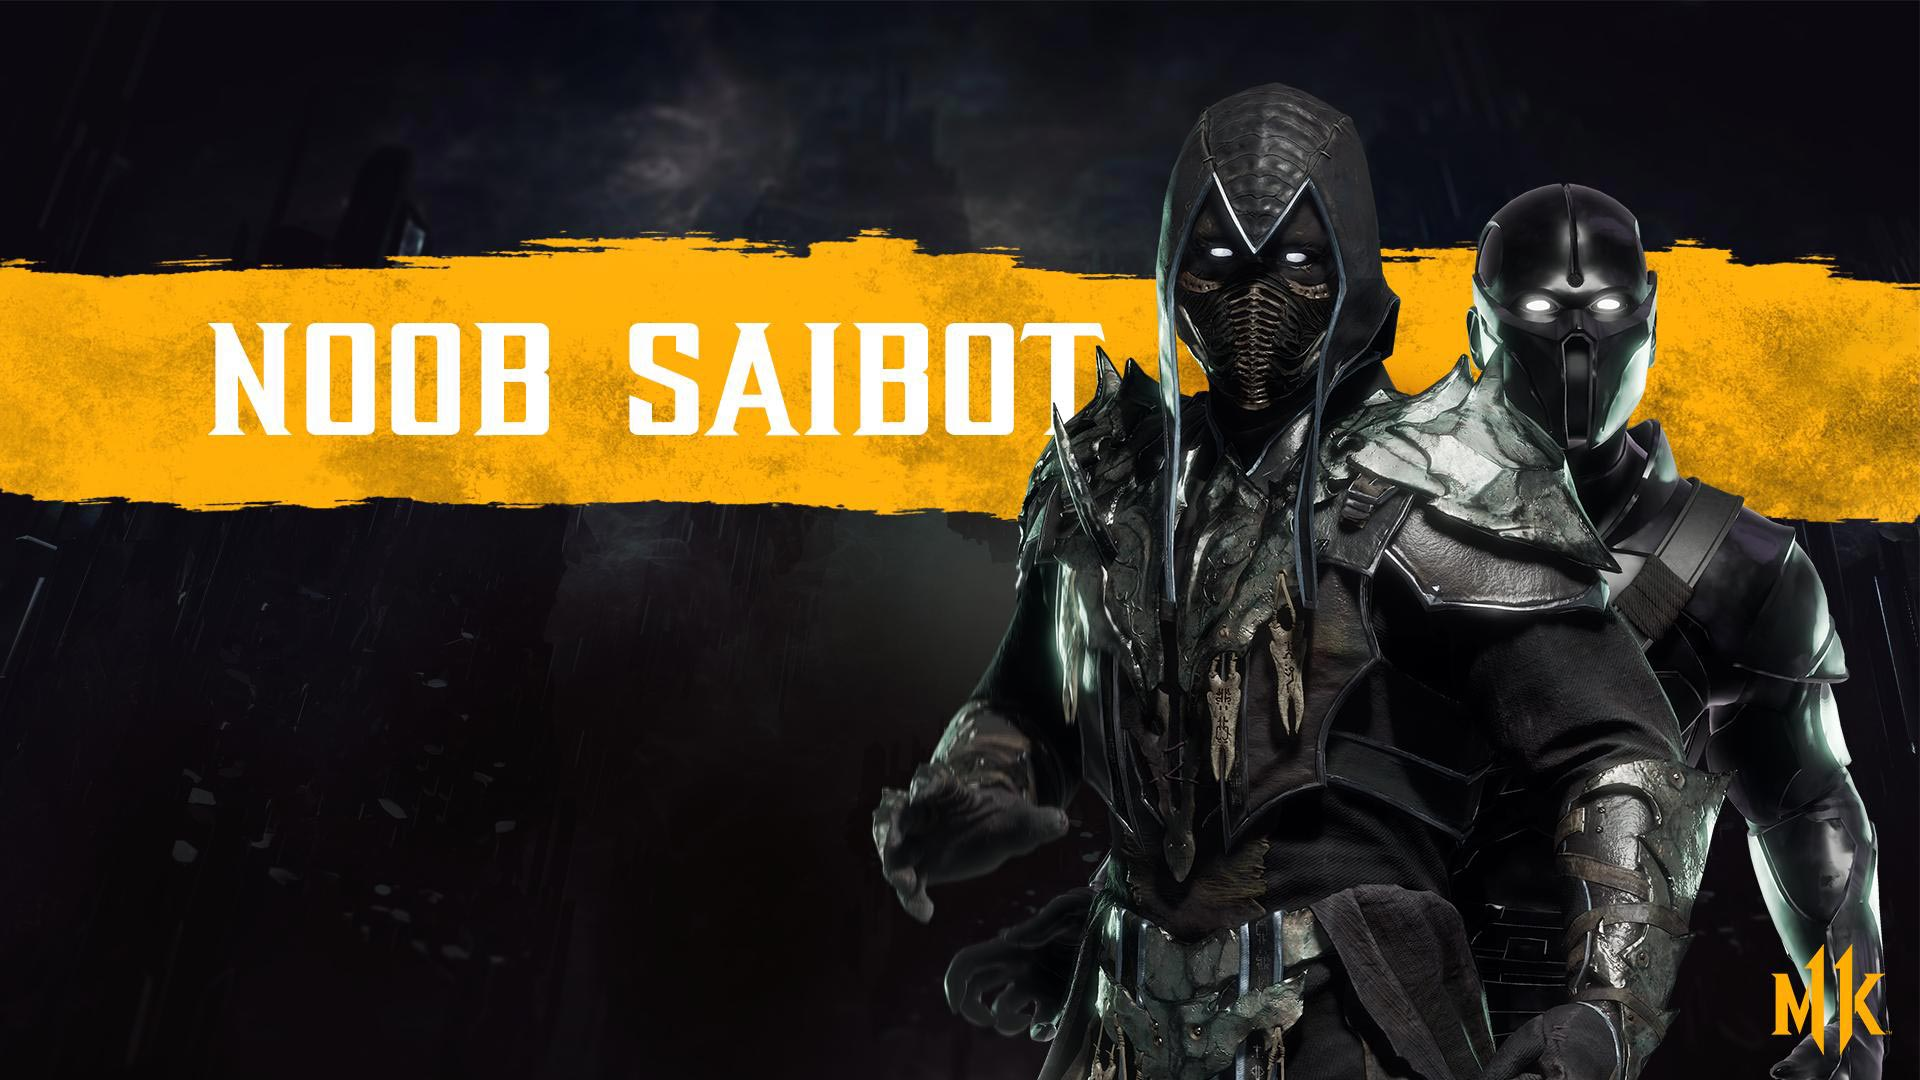 Noob Saibot character artwork in Mortal Kombat 11 7 out of 7 image gallery